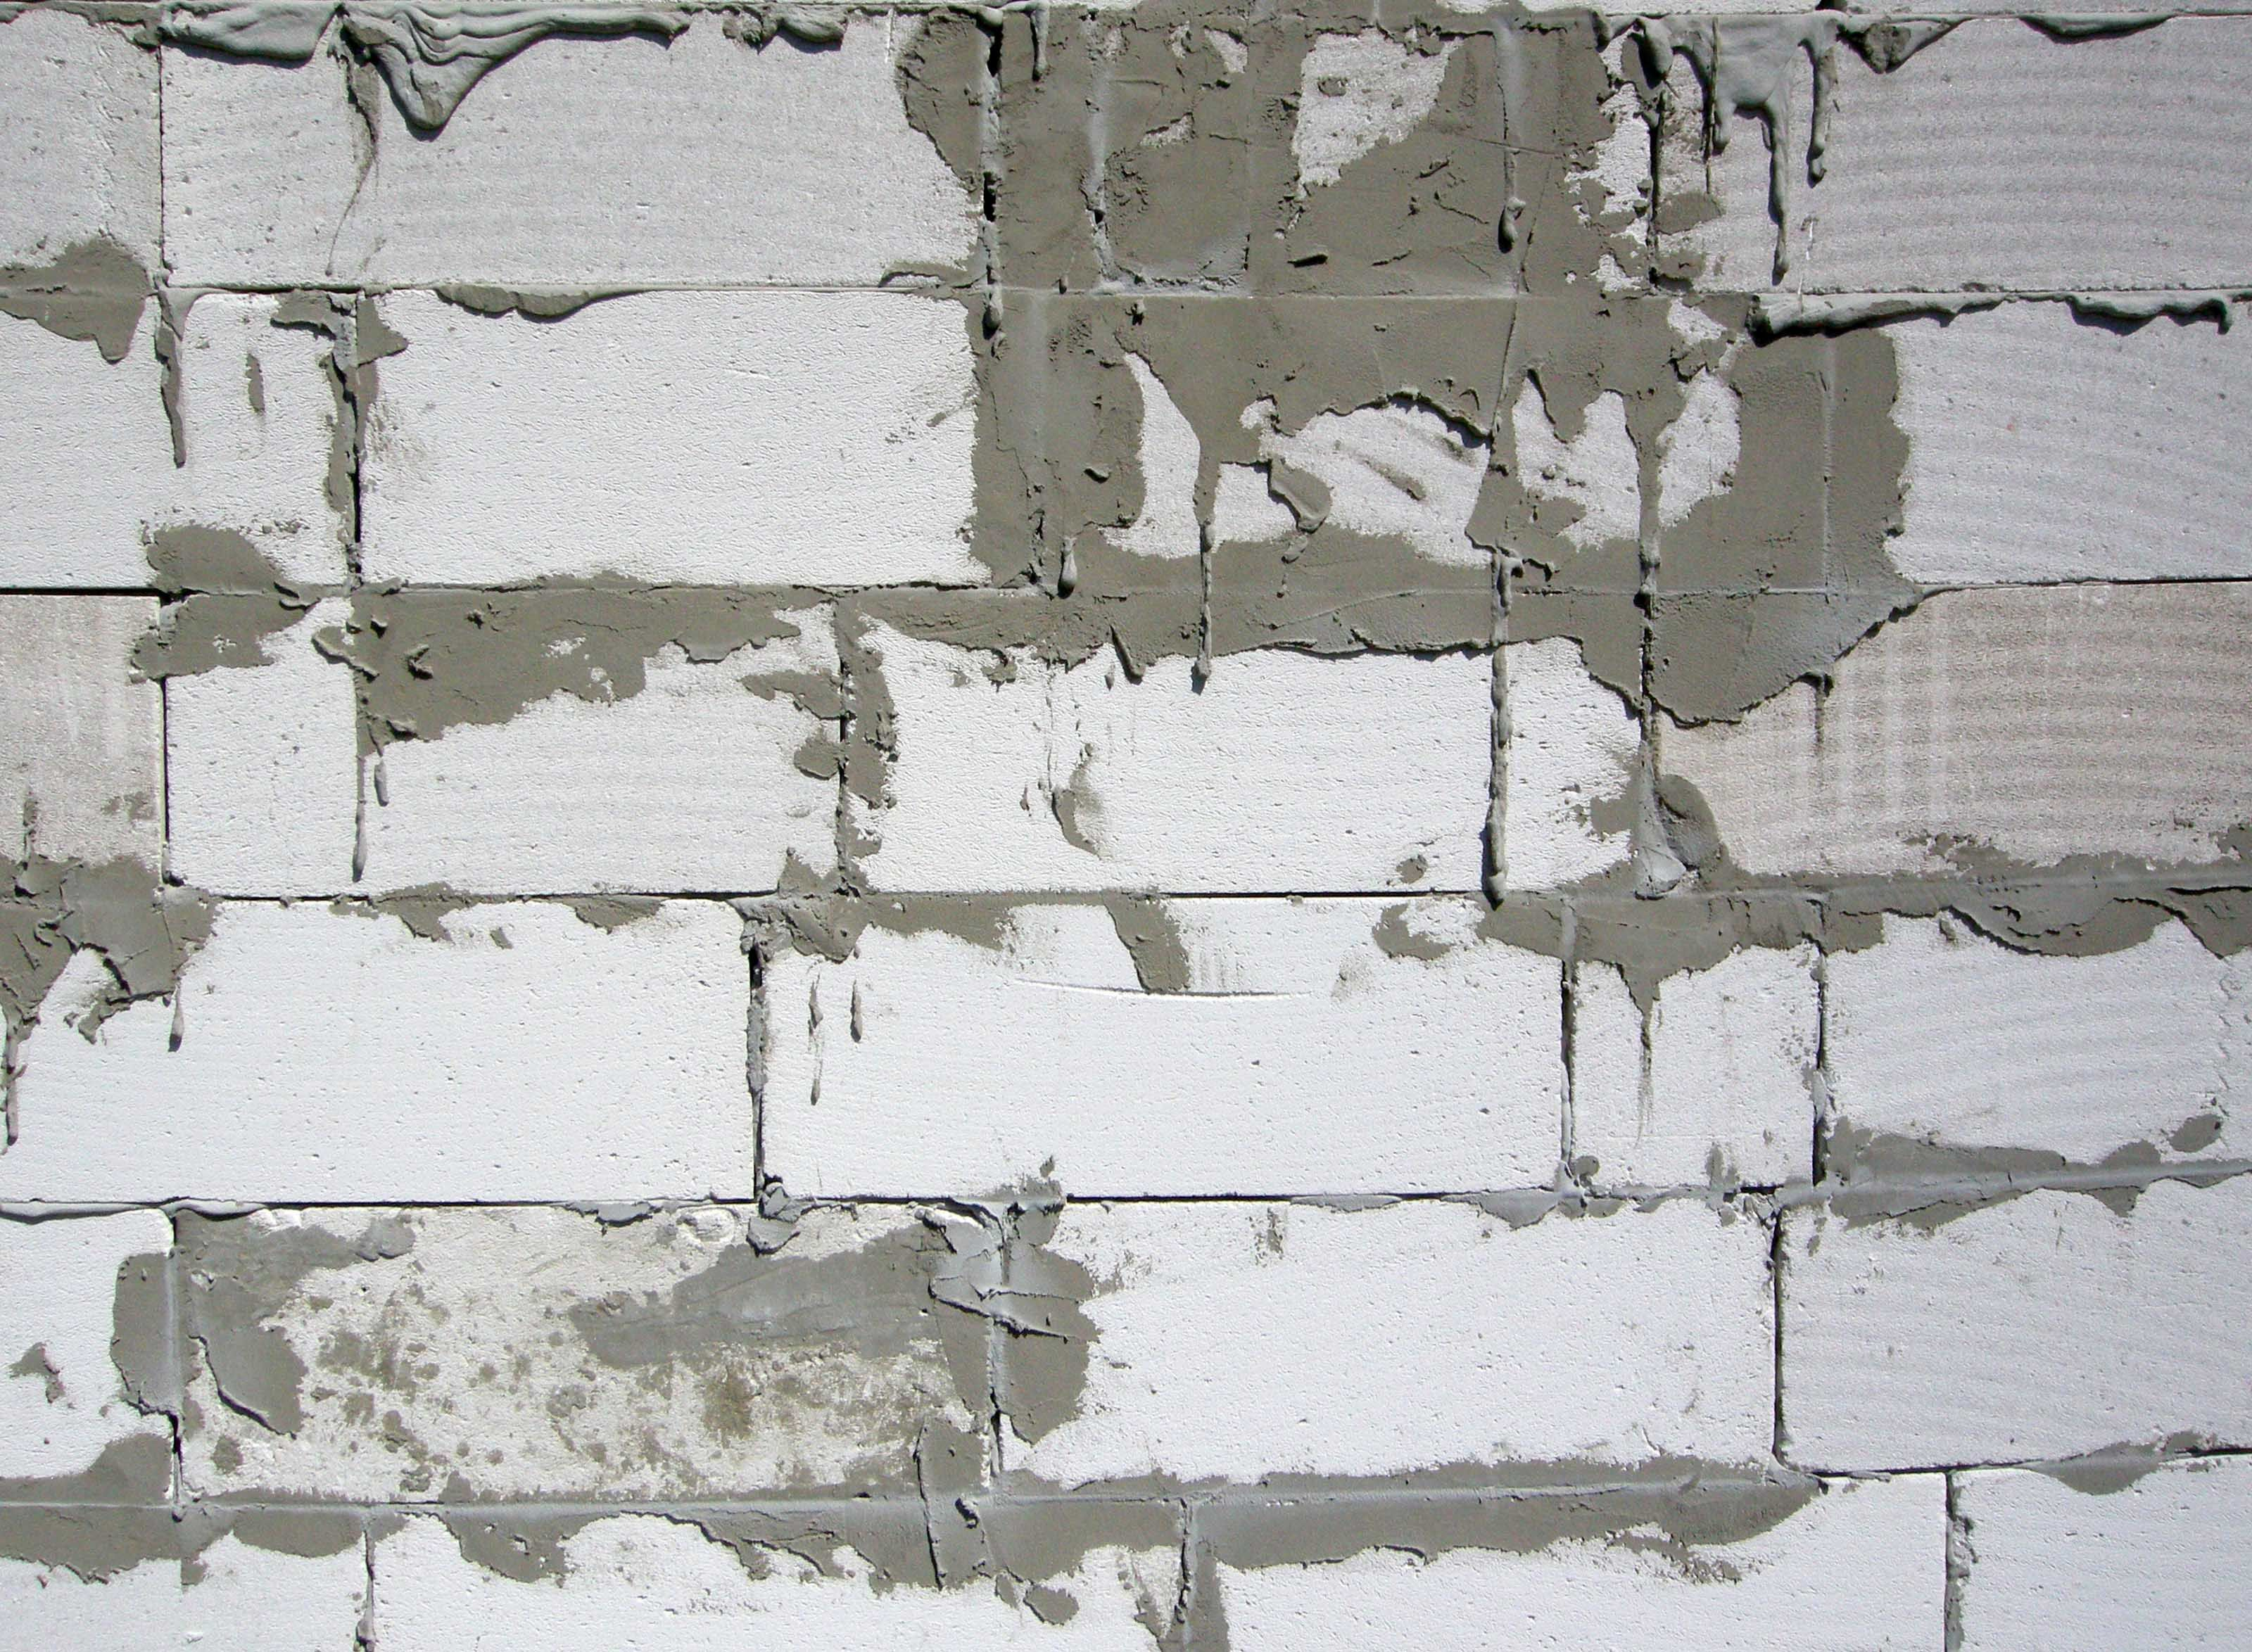 White Bricks Wall With Mortar Download Textures White Growth On Brick Wall Cool White Brick Wall Interi White Brick Walls Brick Wallpaper White Brick Wallpaper